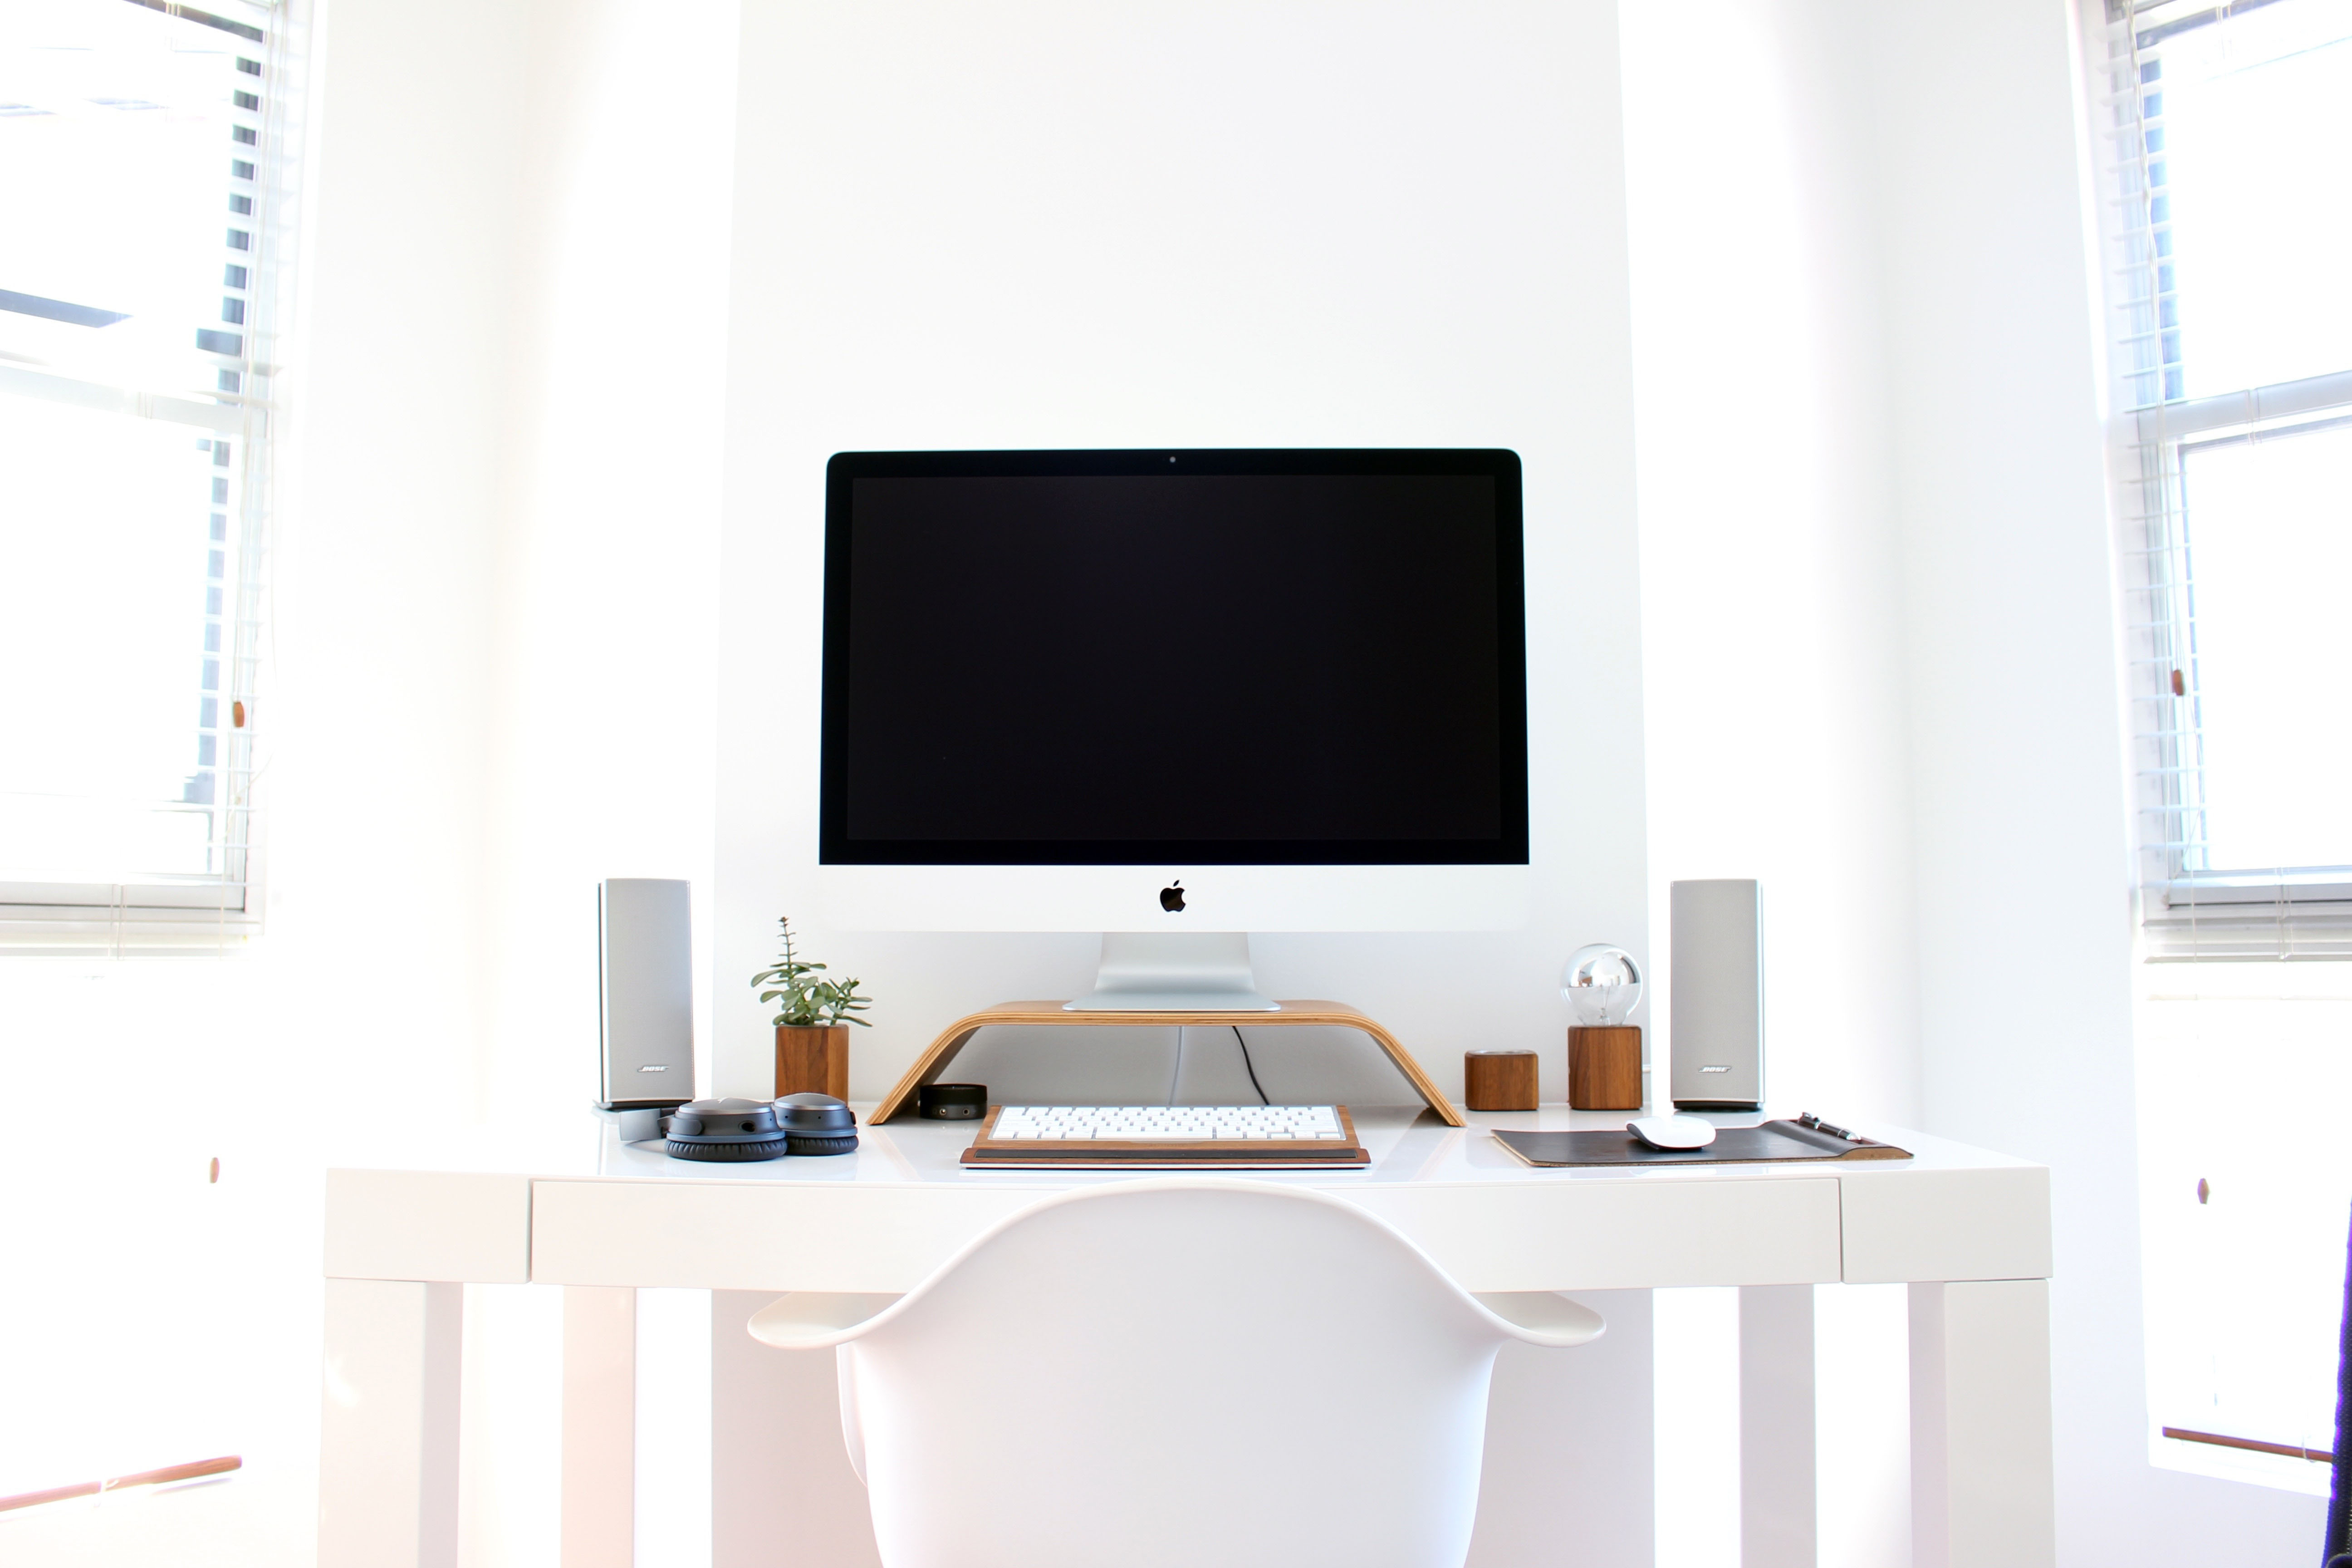 electronic,  computer,  desk, table